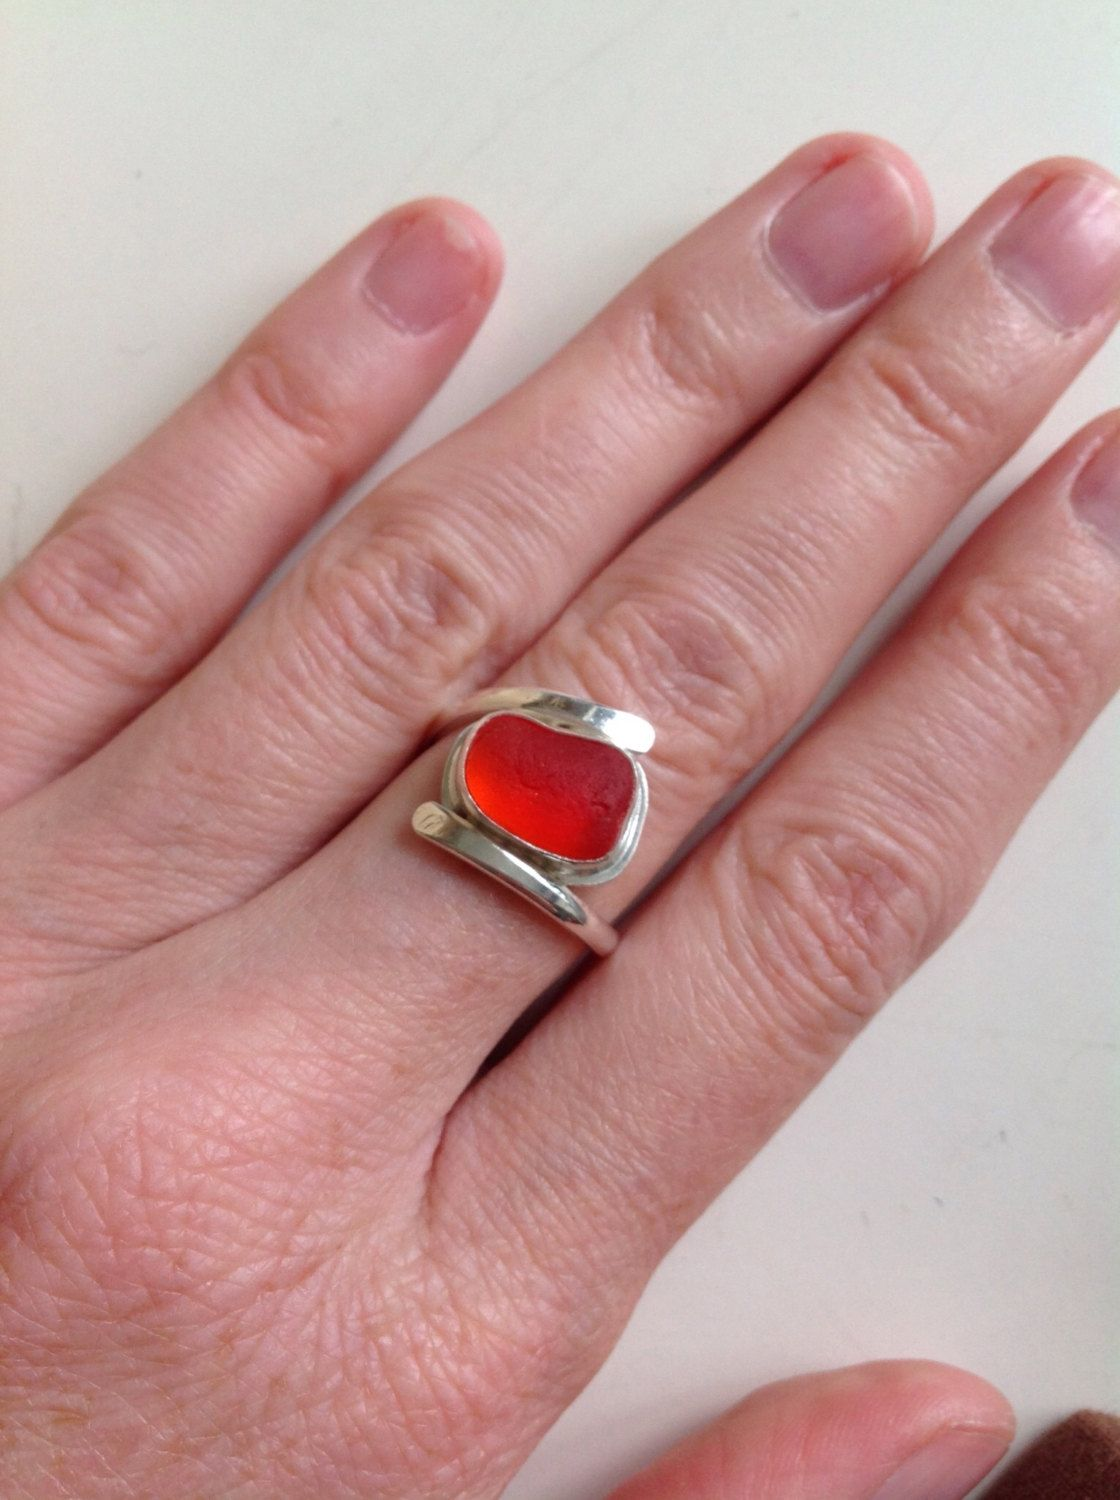 Handmade English sea glass and sterling silver ring - UK O US 7.5 ...